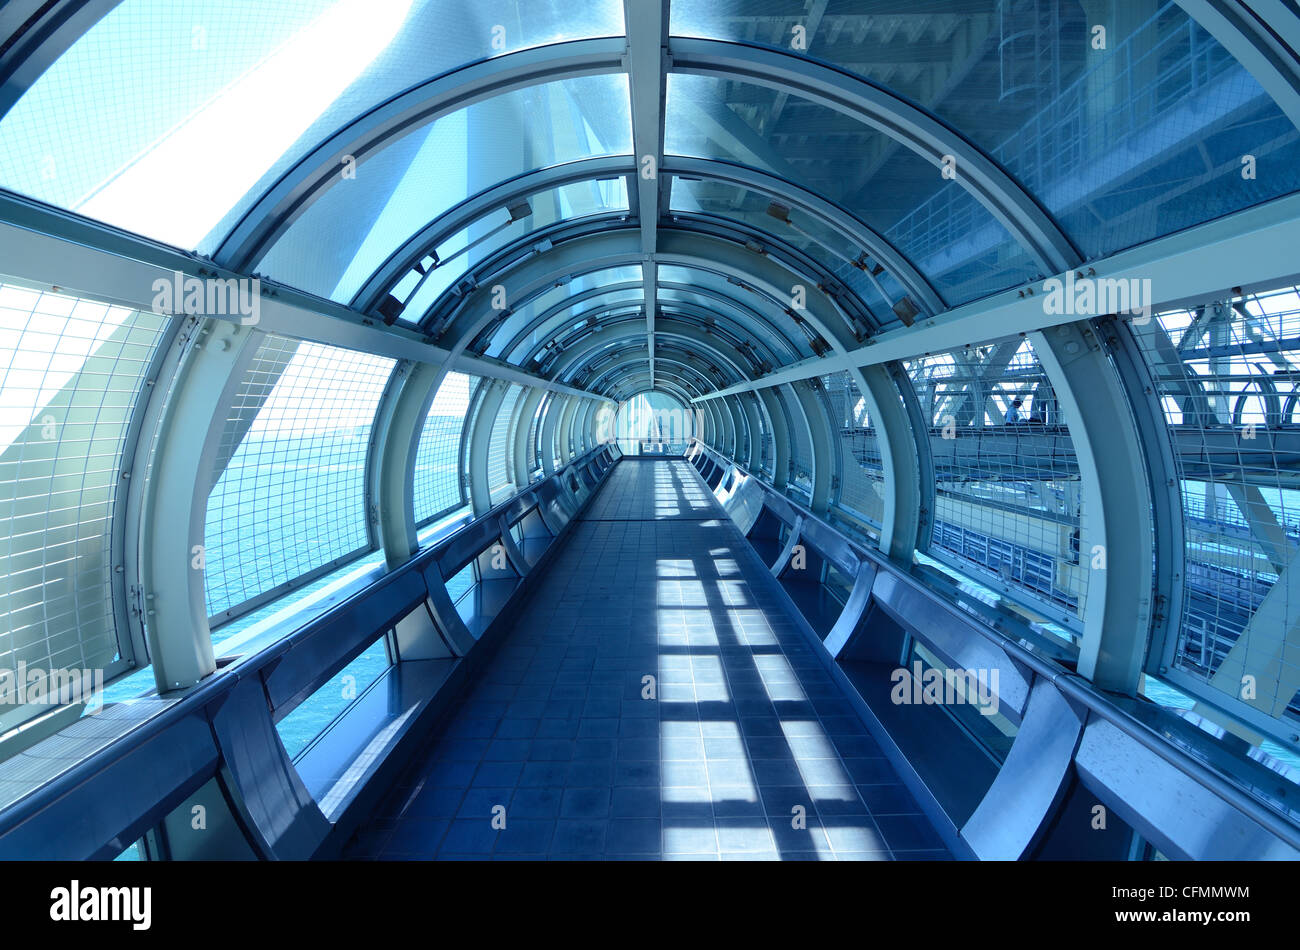 Glass tunnel walkway - Stock Image